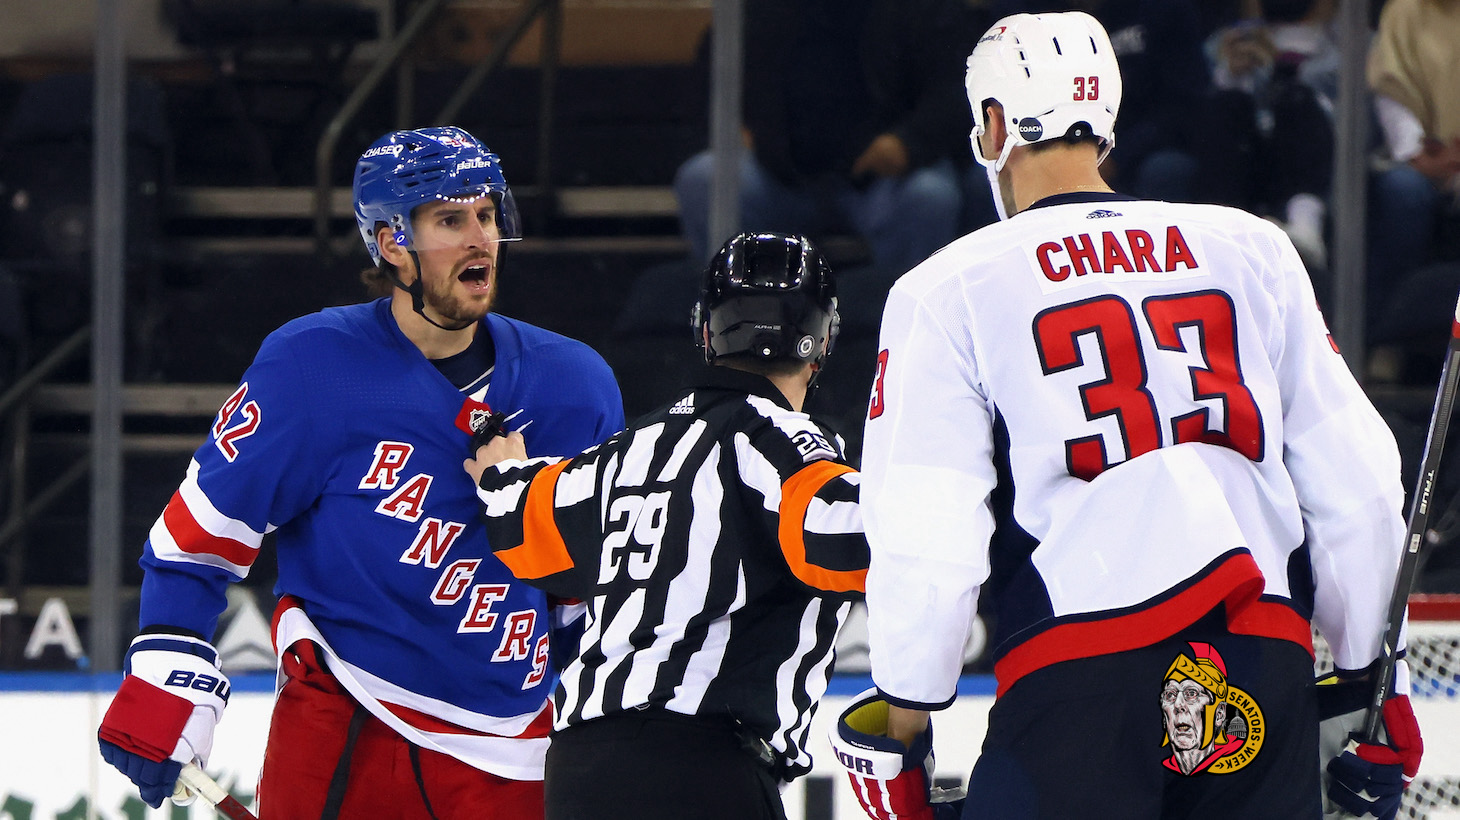 NEW YORK, NEW YORK - MAY 05: Brendan Smith #42 of the New York Rangers chats with Zdeno Chara #33 of the Washington Capitals during the second period at Madison Square Garden on May 05, 2021 in New York City. (Photo by Bruce Bennett/Getty Images)